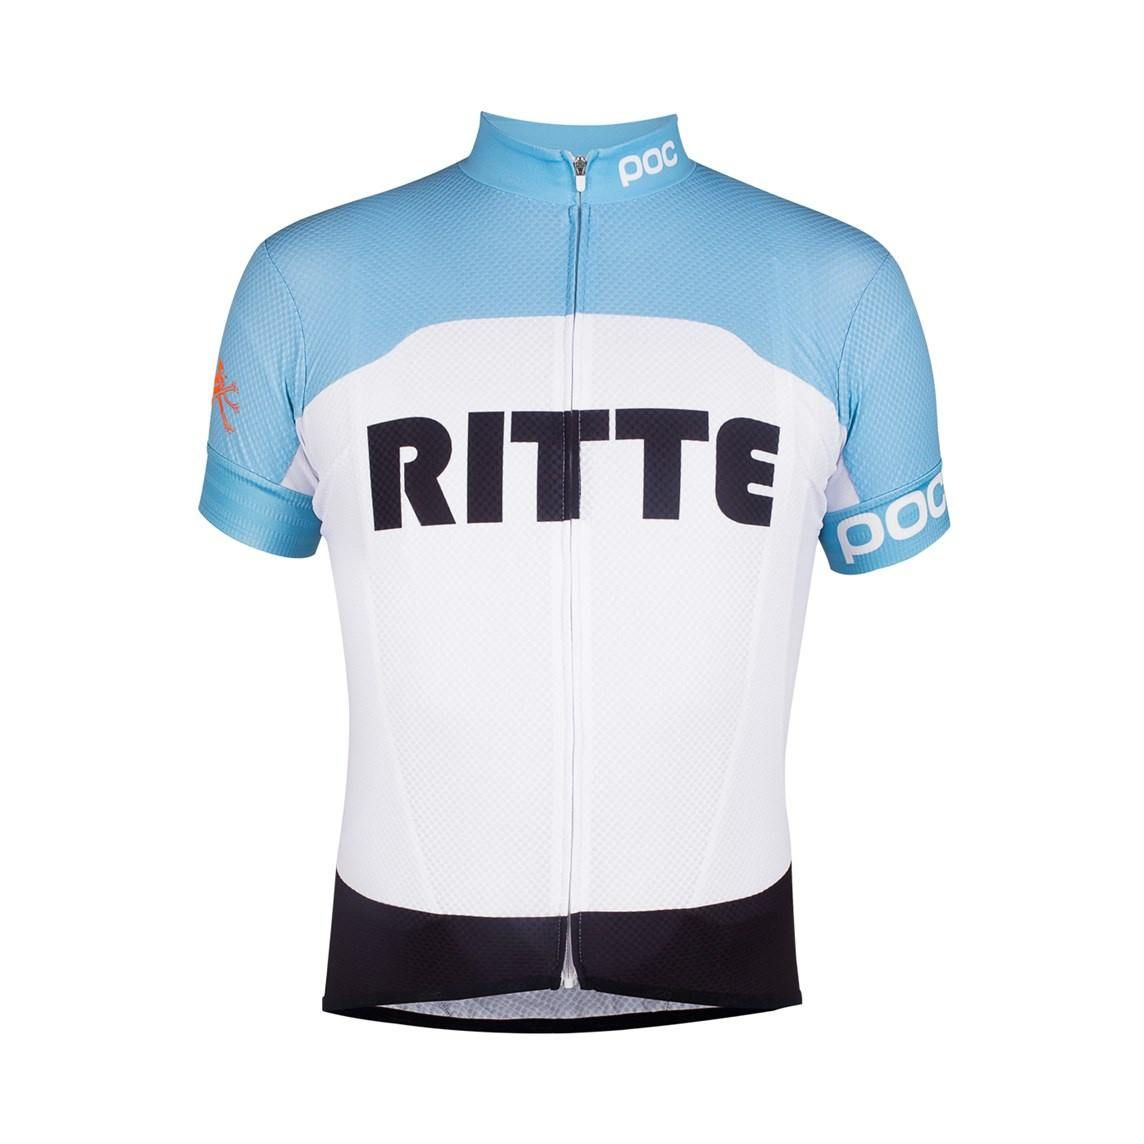 dded05aac1 Poc-Ritte-Jersey   kit   Ropa, Ropa y accesorios, Bicicletas